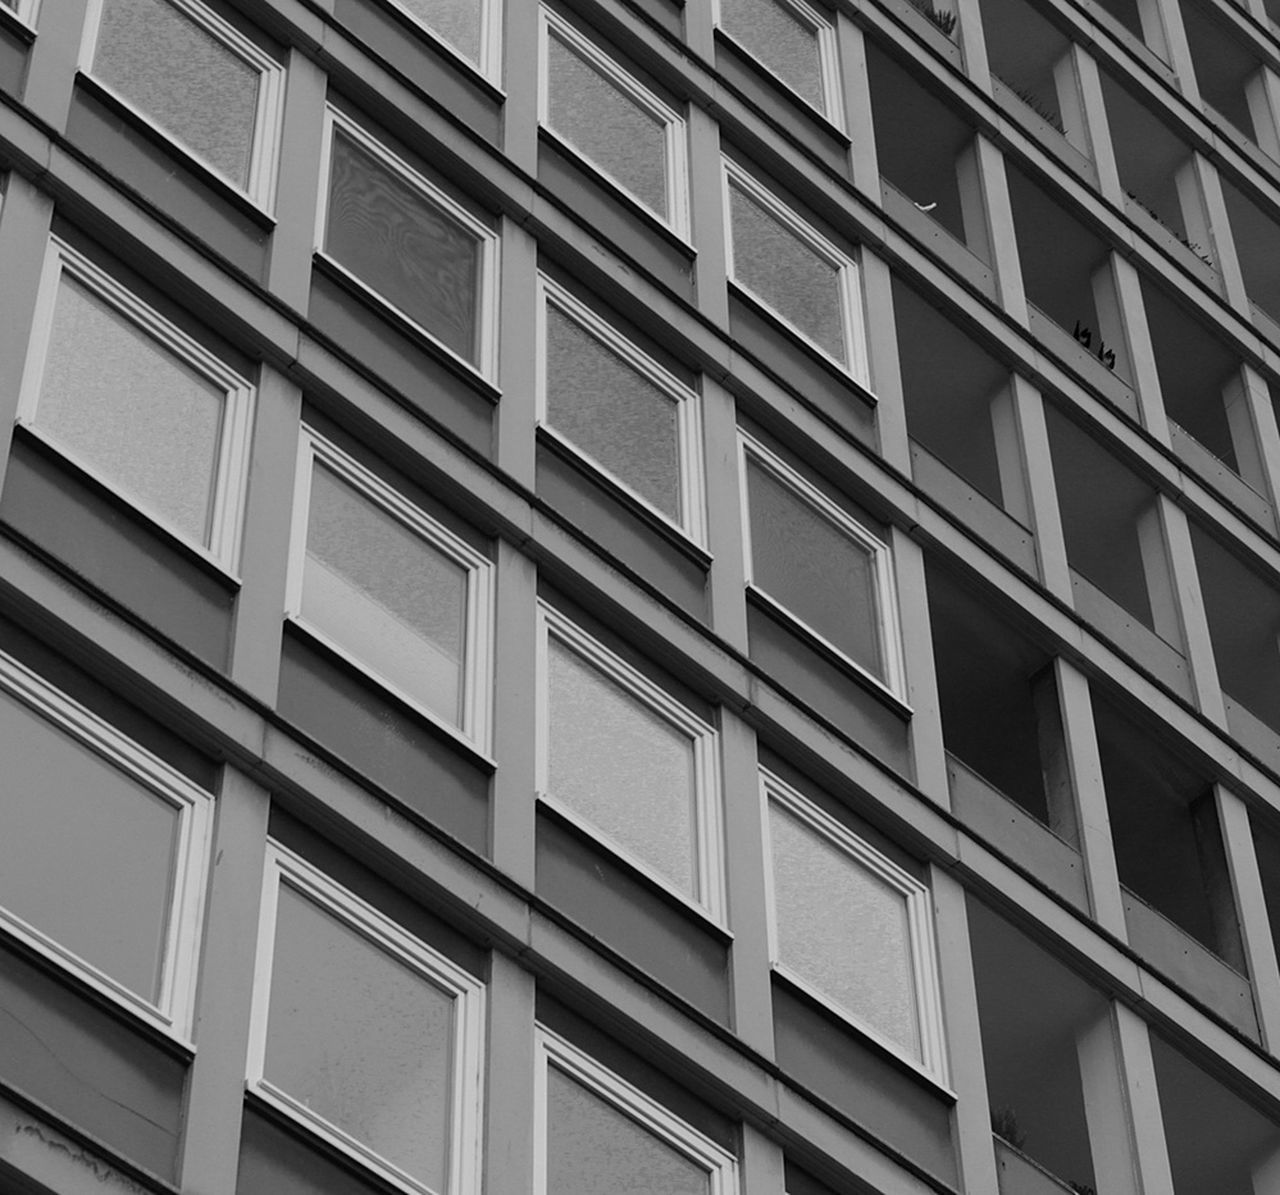 Building Exterior Architecture Built Structure Window Full Frame Low Angle View Outdoors Backgrounds Day Repetition No People City Berlin Paris Tokyo Barcelona Geometric Shape Forms Lines Germany Geometry